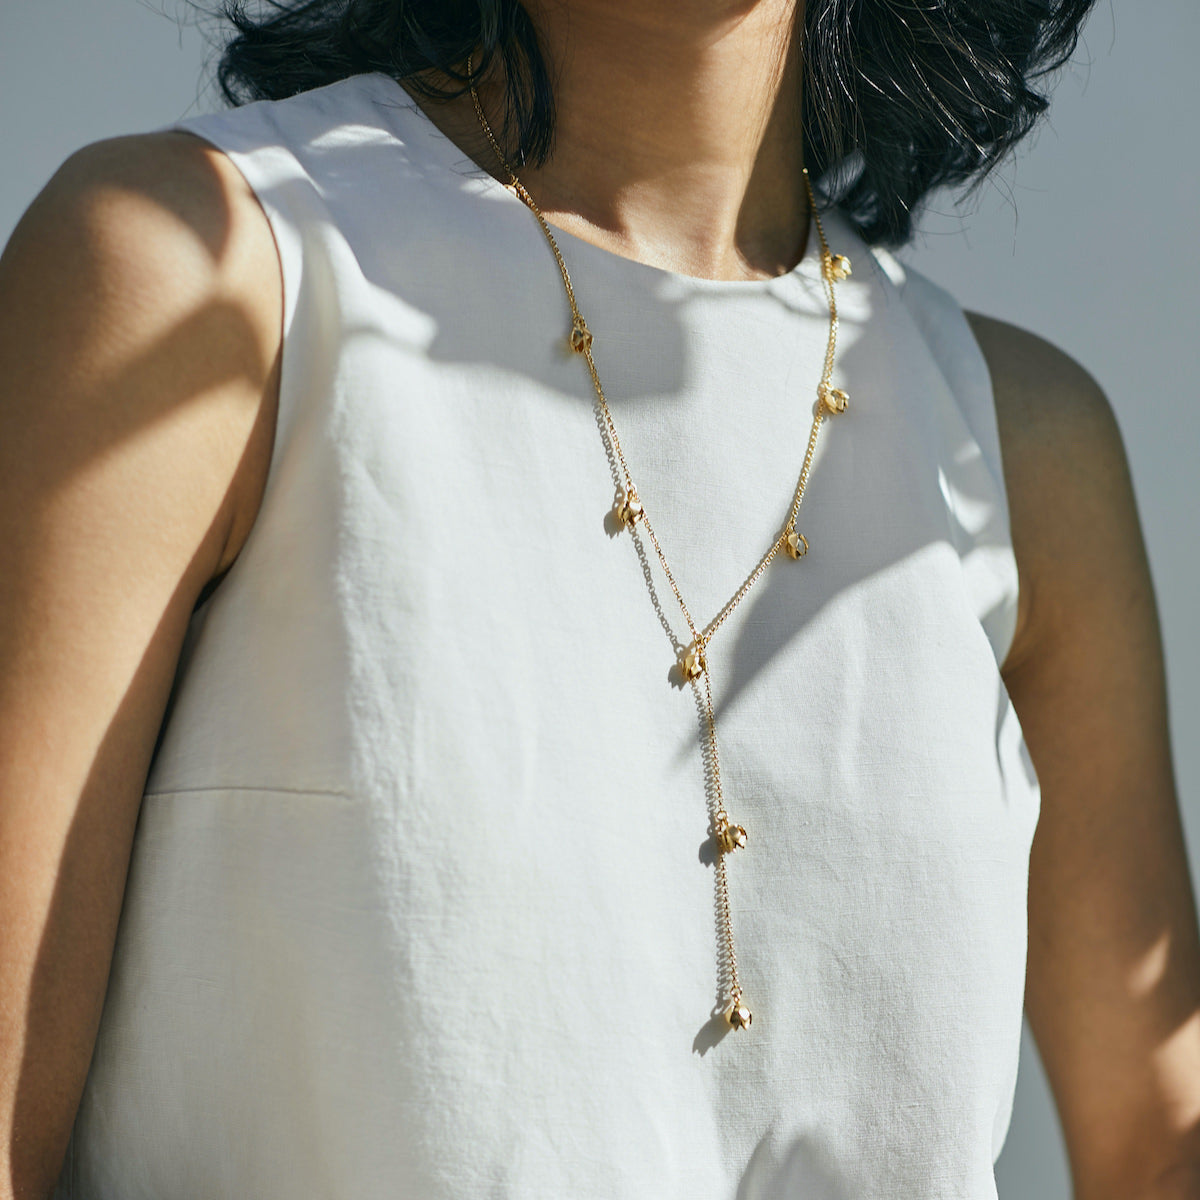 Woman wearing gold Lotus bud necklace by Brave Edith from Bloom collection